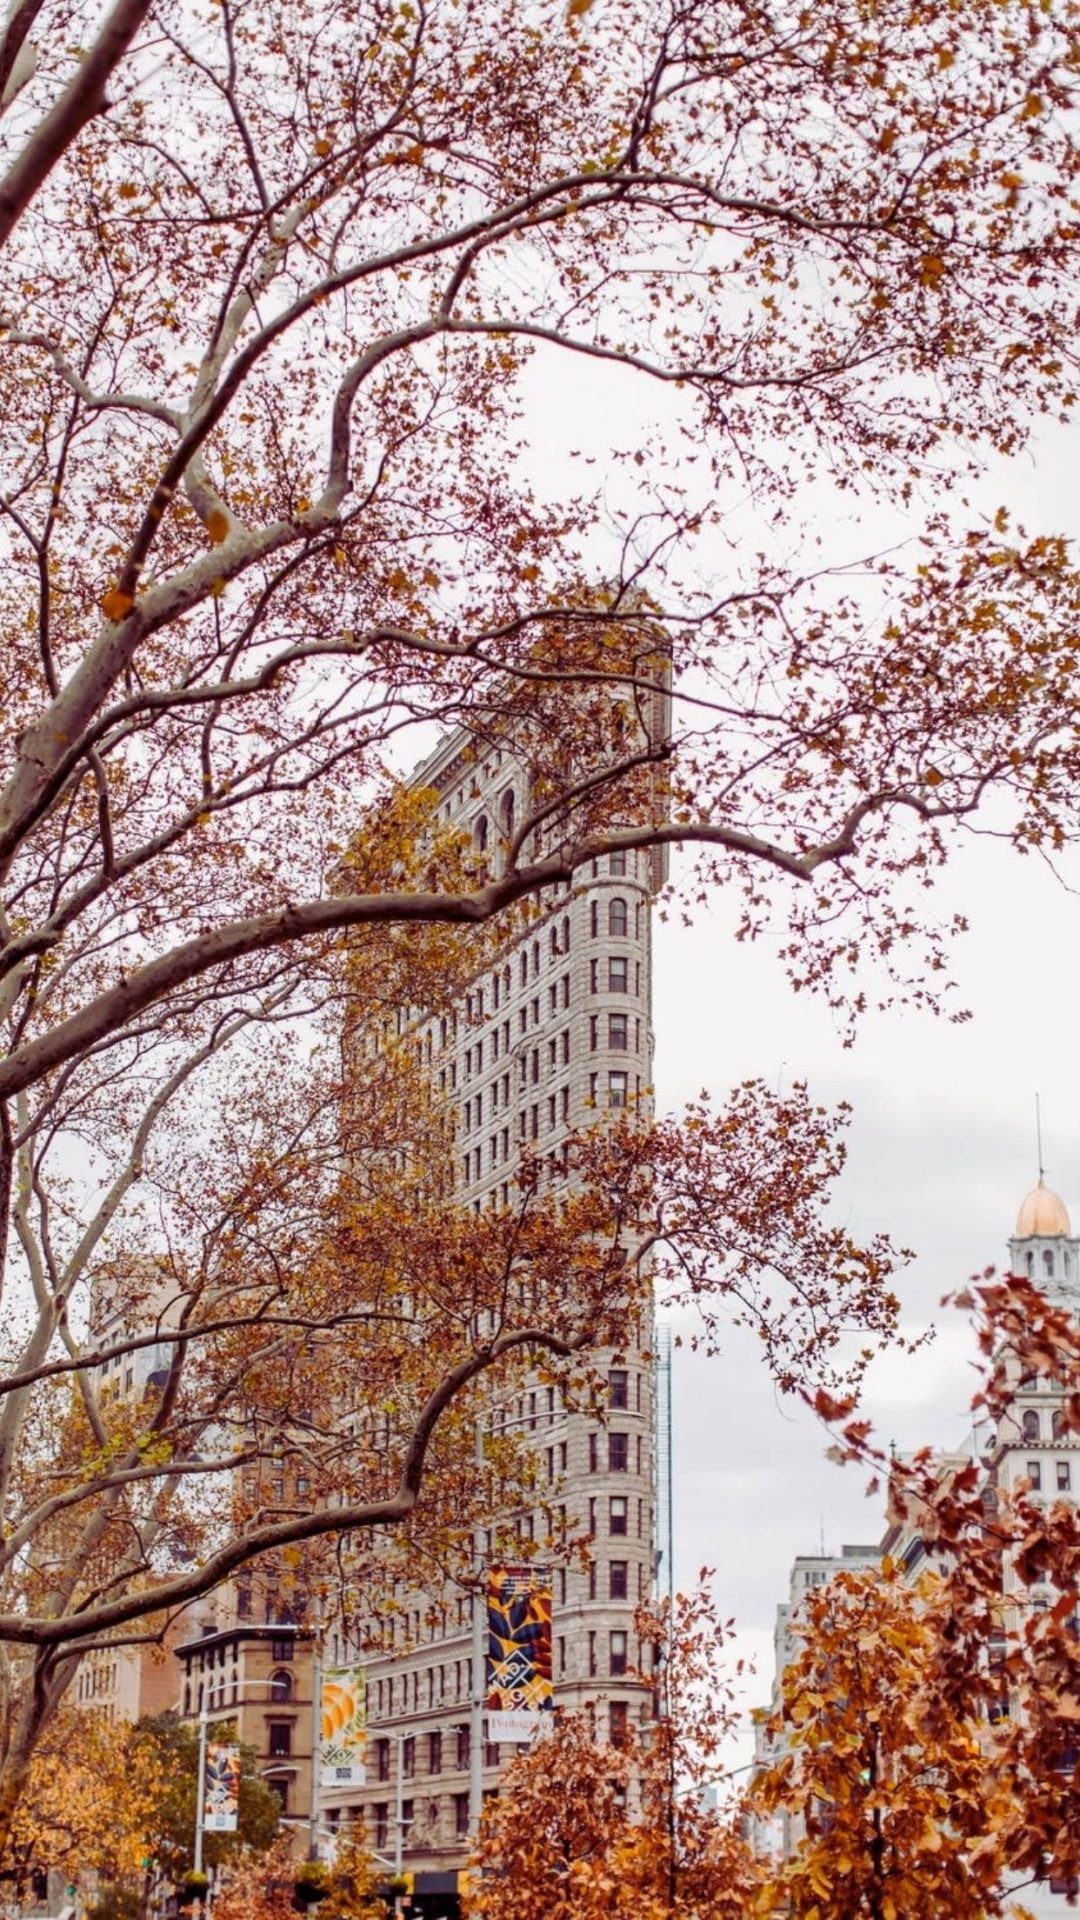 Fall in New York City wallpaper for iPhone